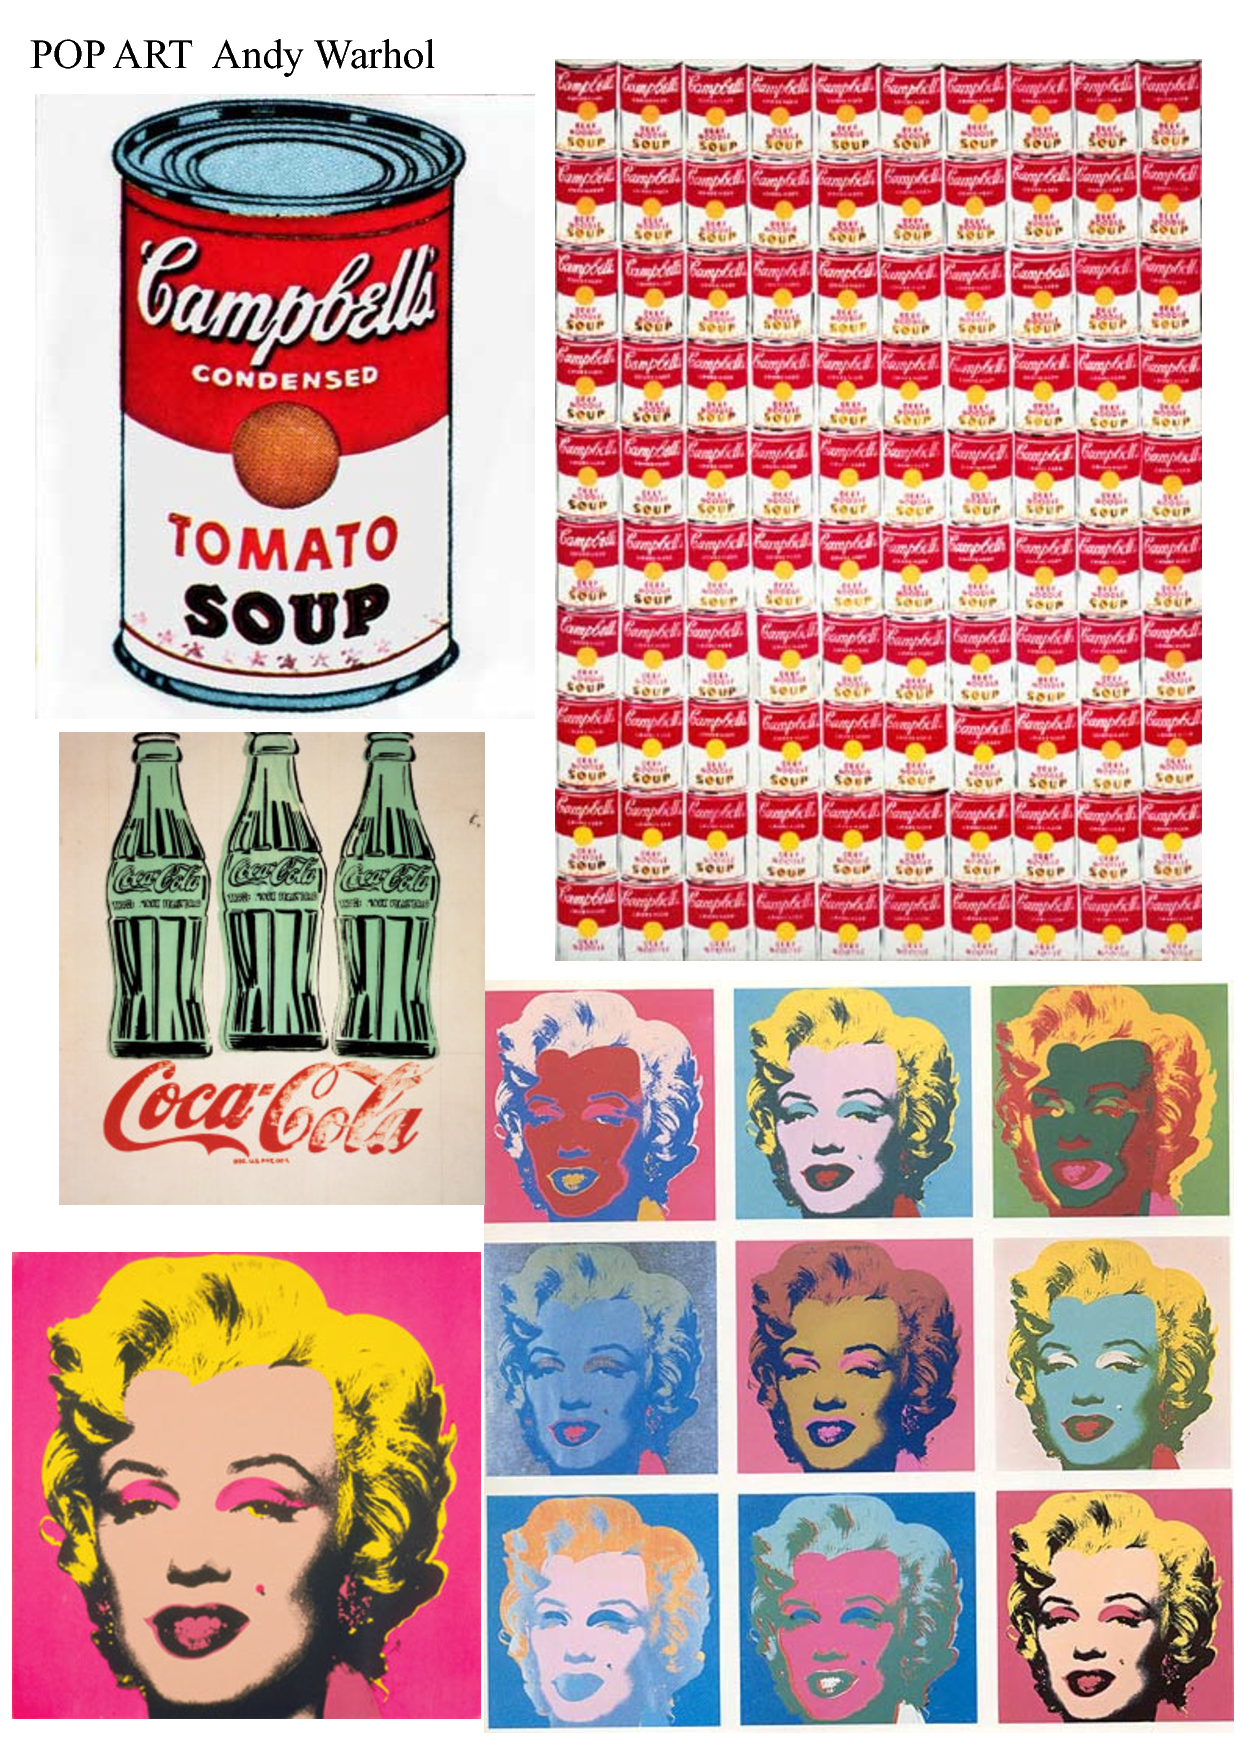 Marilyn Pop Art Andy Warhol Warhol Pop Art Vl84 Jornalagora